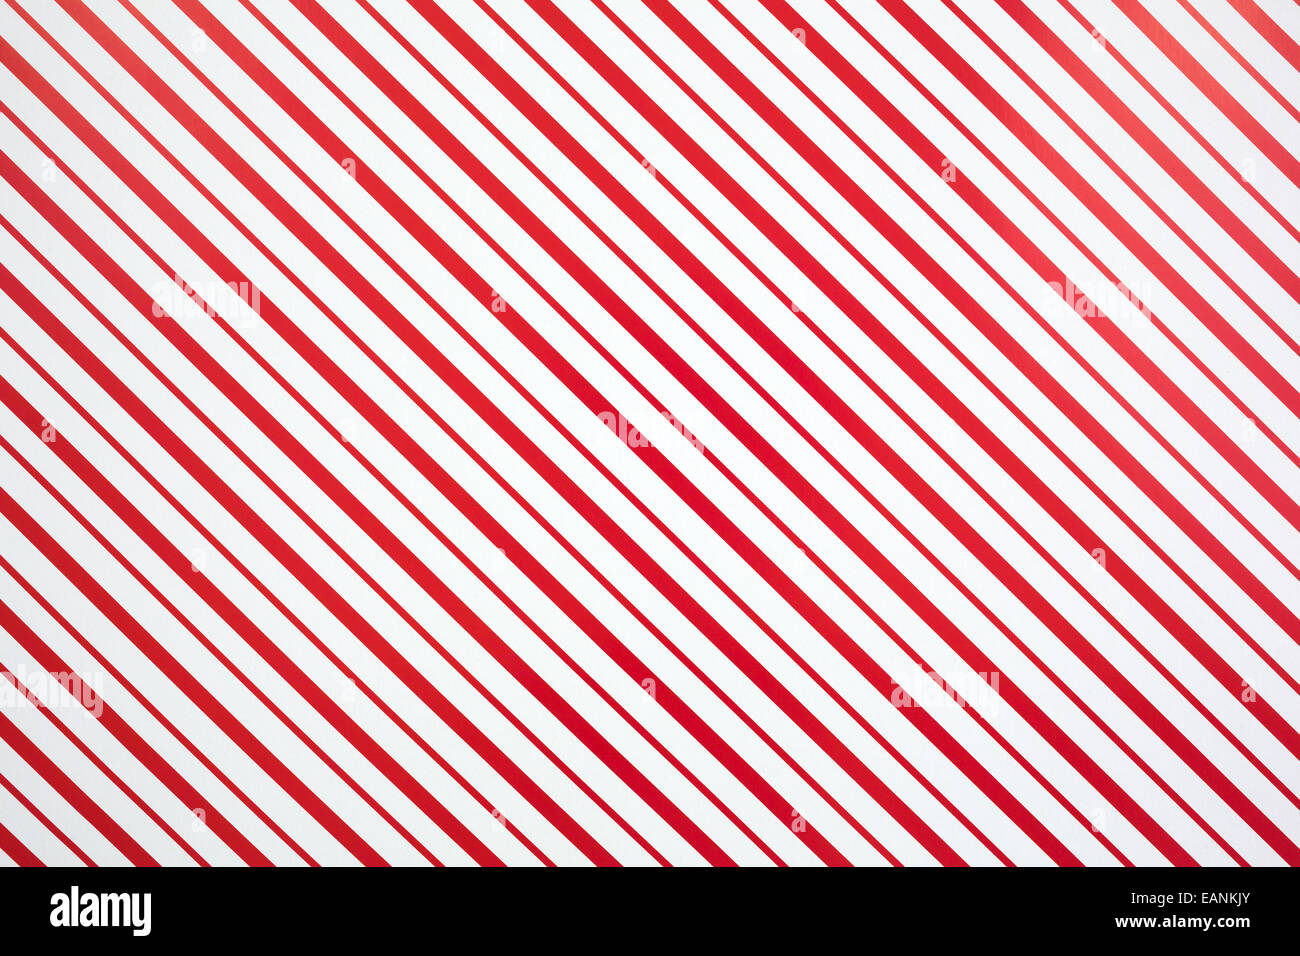 A red and white striped Christmas pattern Stock Photo ...